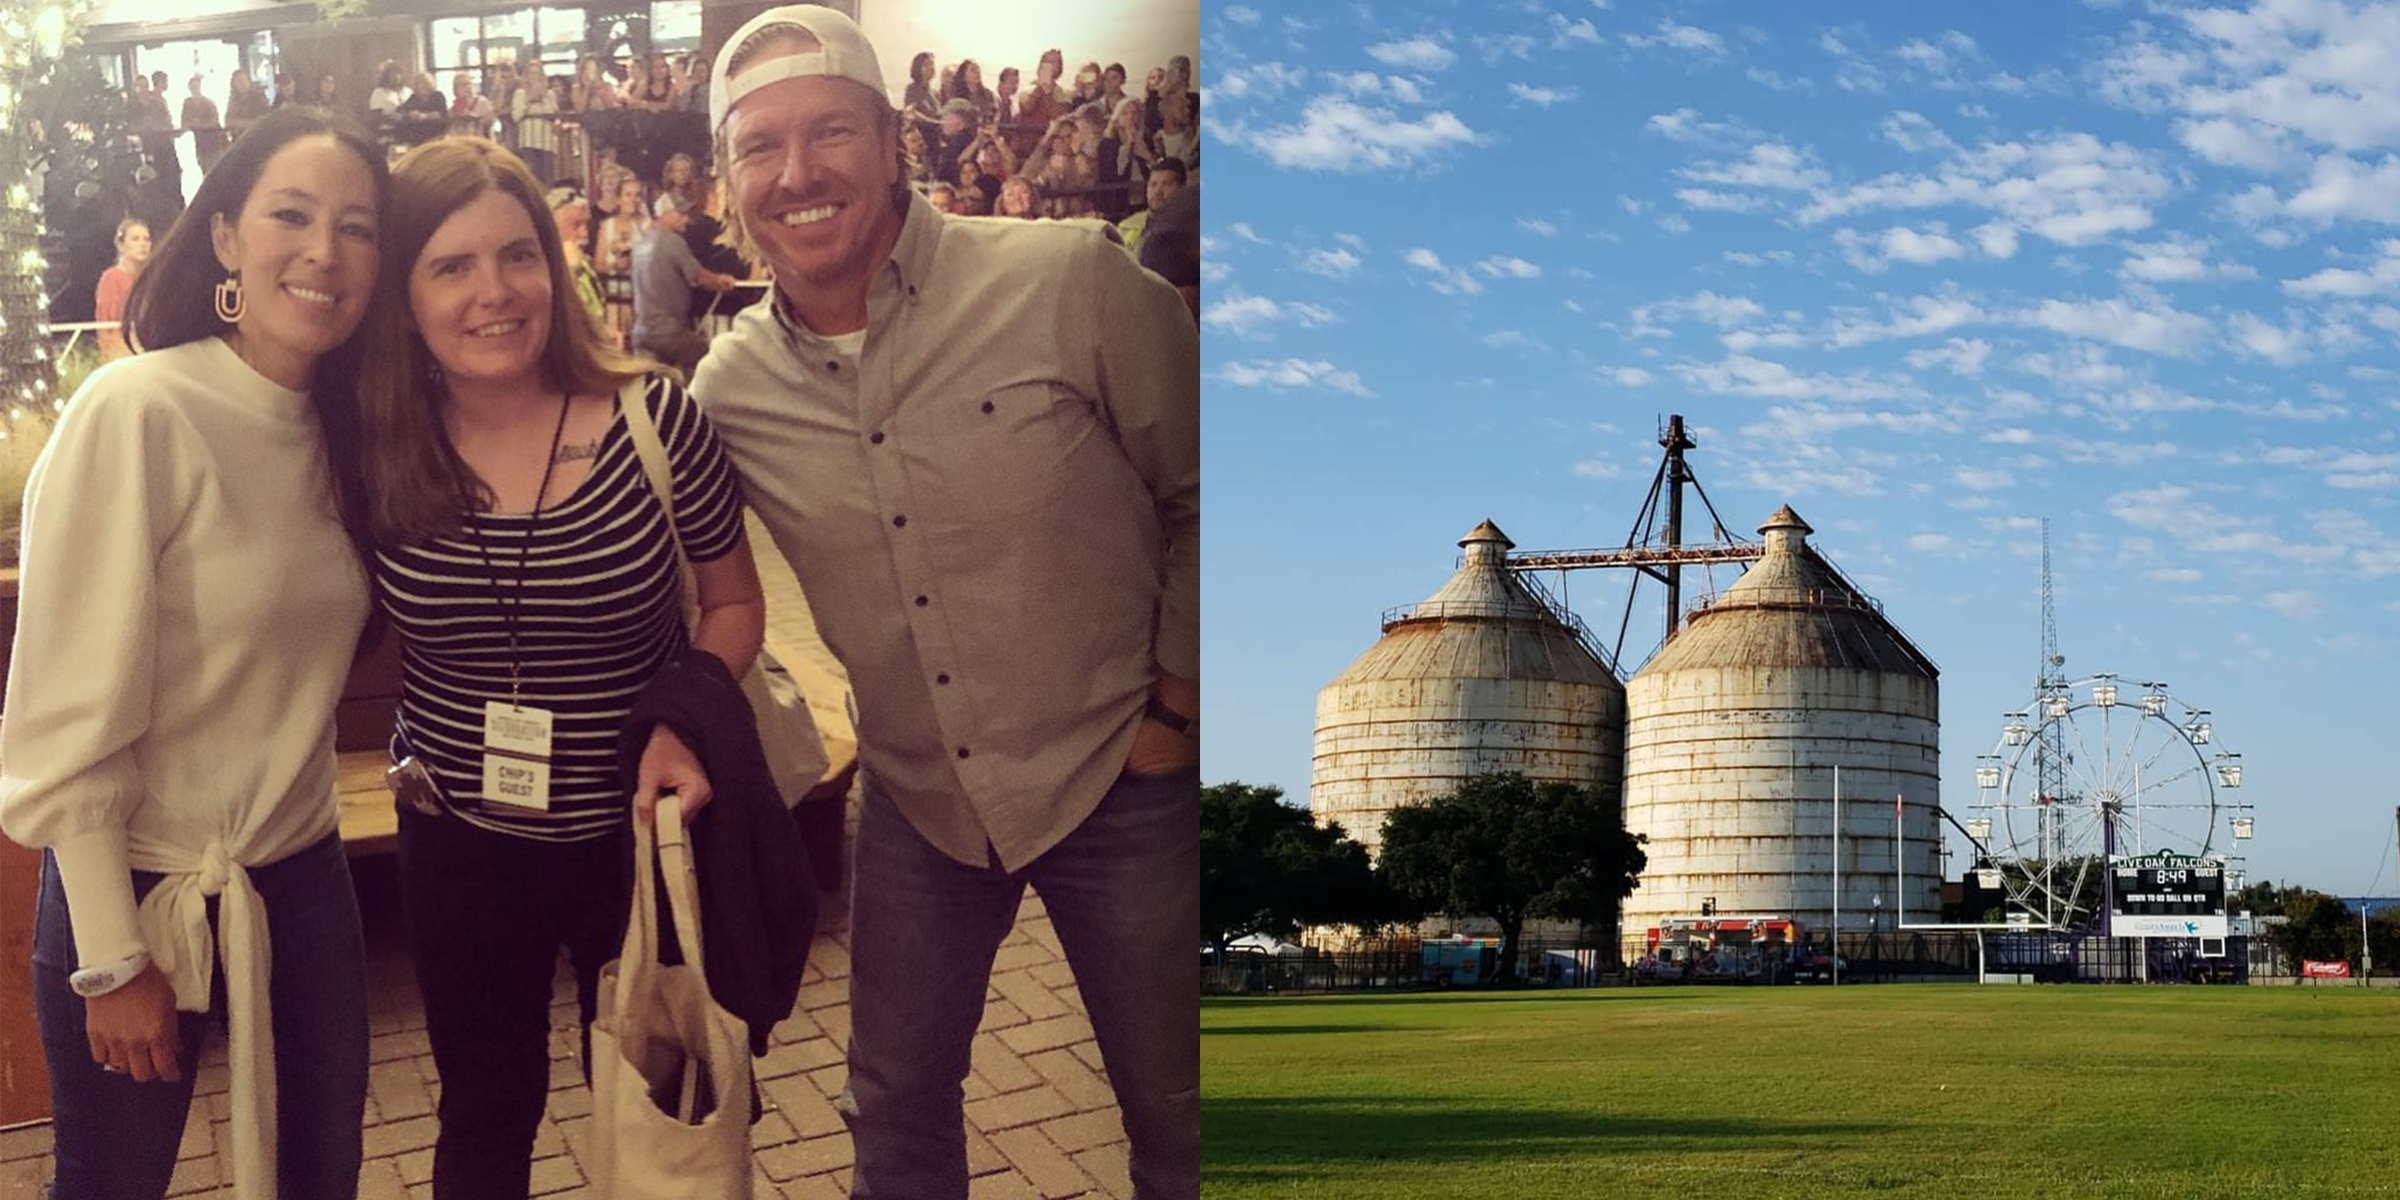 Silobration: Chip and Joanna Gaines thank fans for a 'magical' 5th annual event